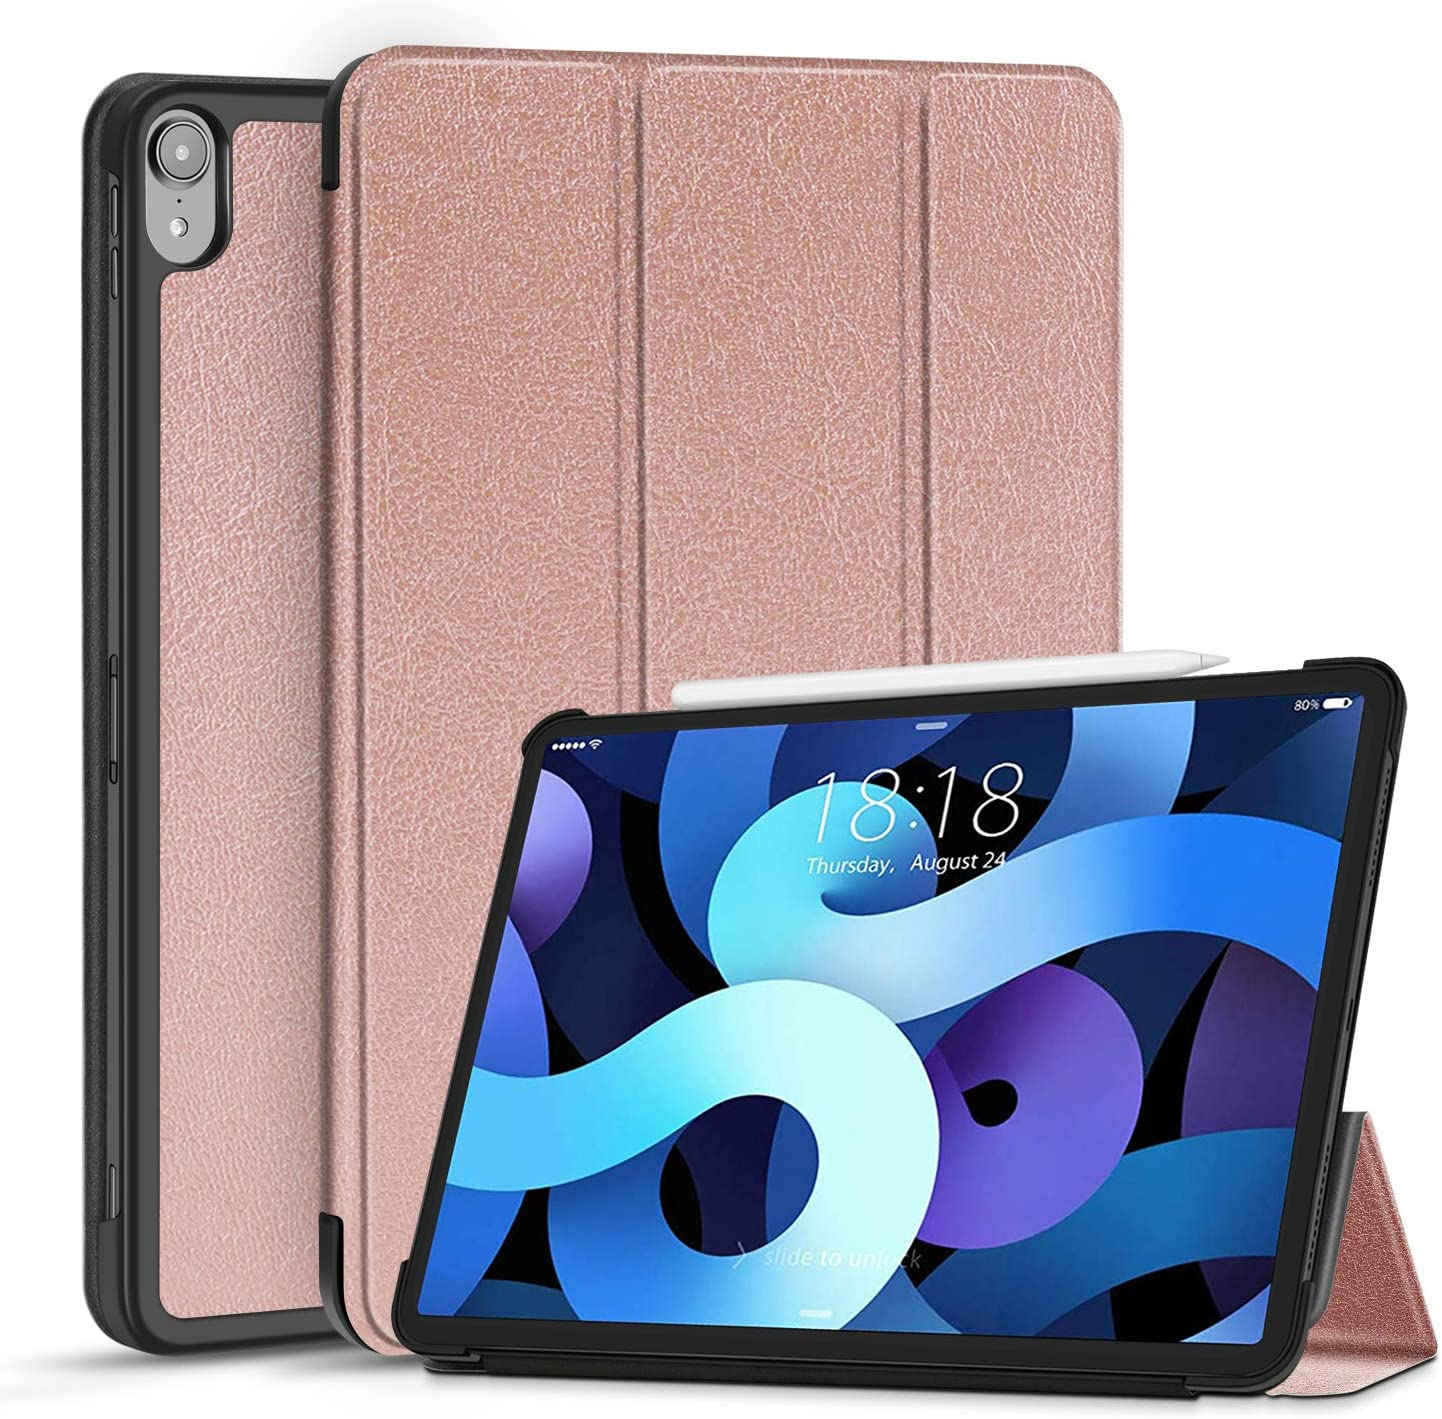 TNP Case for iPad Air 4 / 4th Generation 2020 Protective Cover 10.9 Inch Compatible with 2nd Gen Apple Pencil Charging - Trifold Stand Holder Slim Folio Sleeve Smart Auto Sleep Wake - Rose Gold